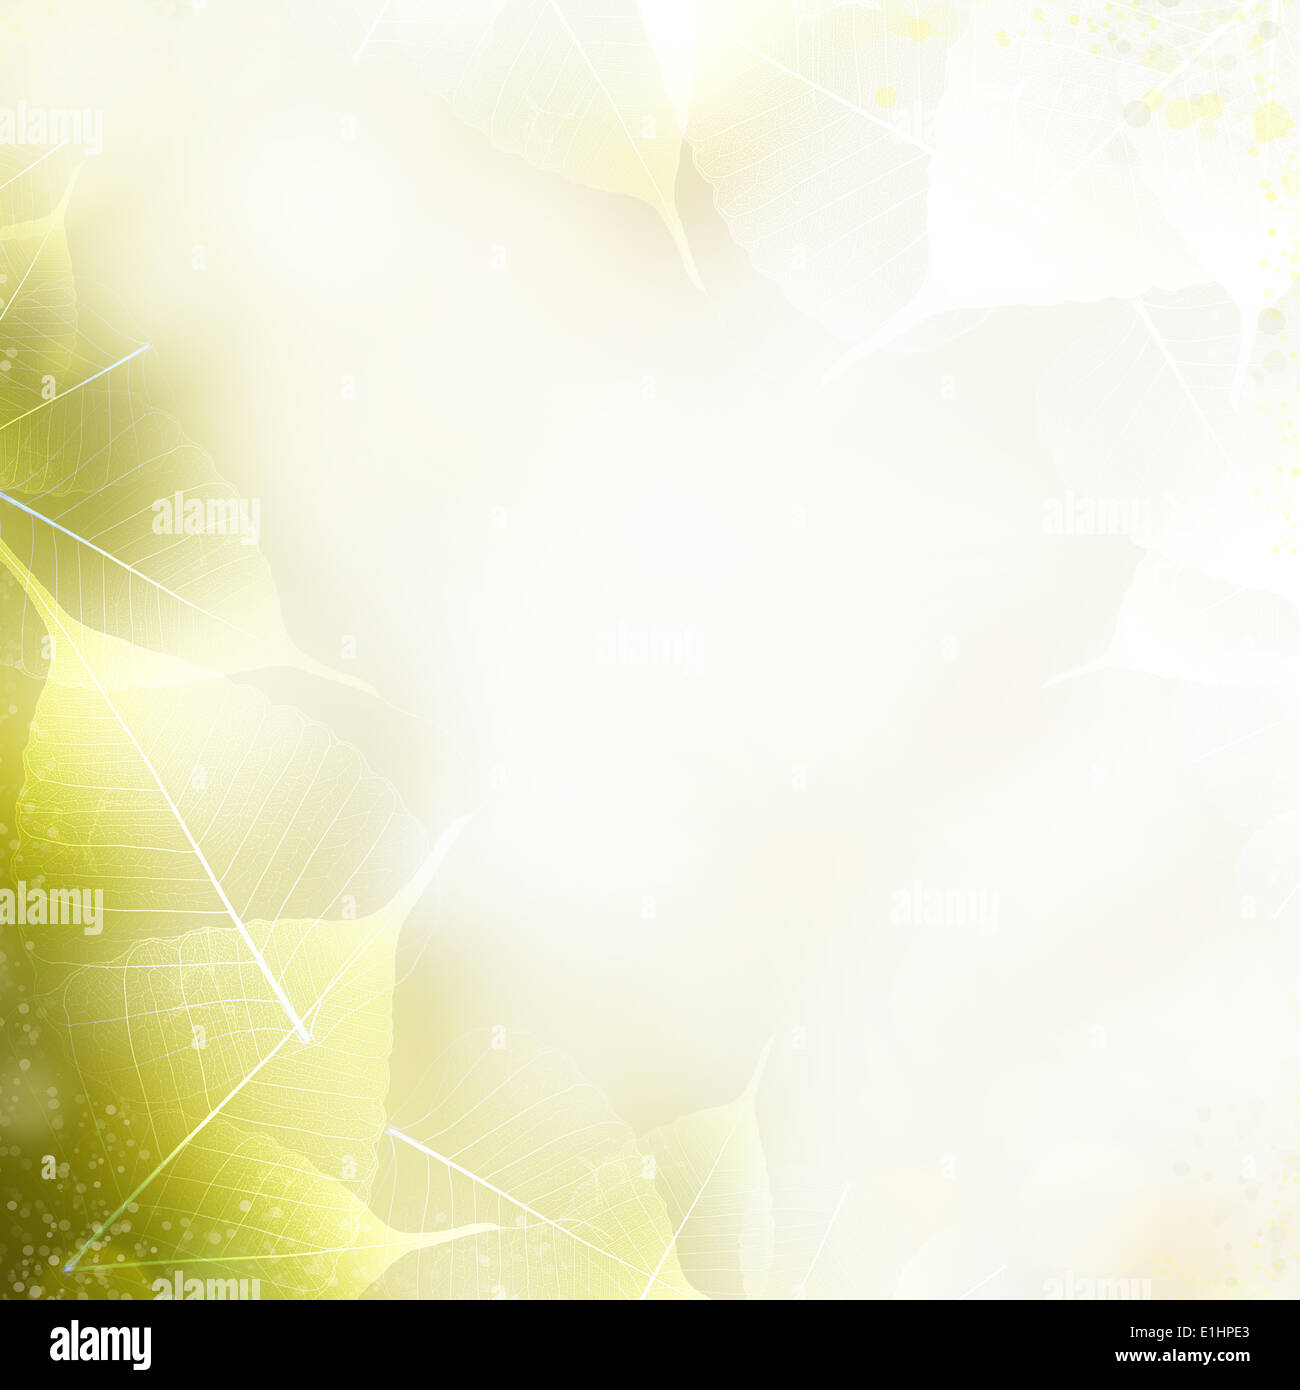 Art background - beautiful nature frame with leaves - Stock Image